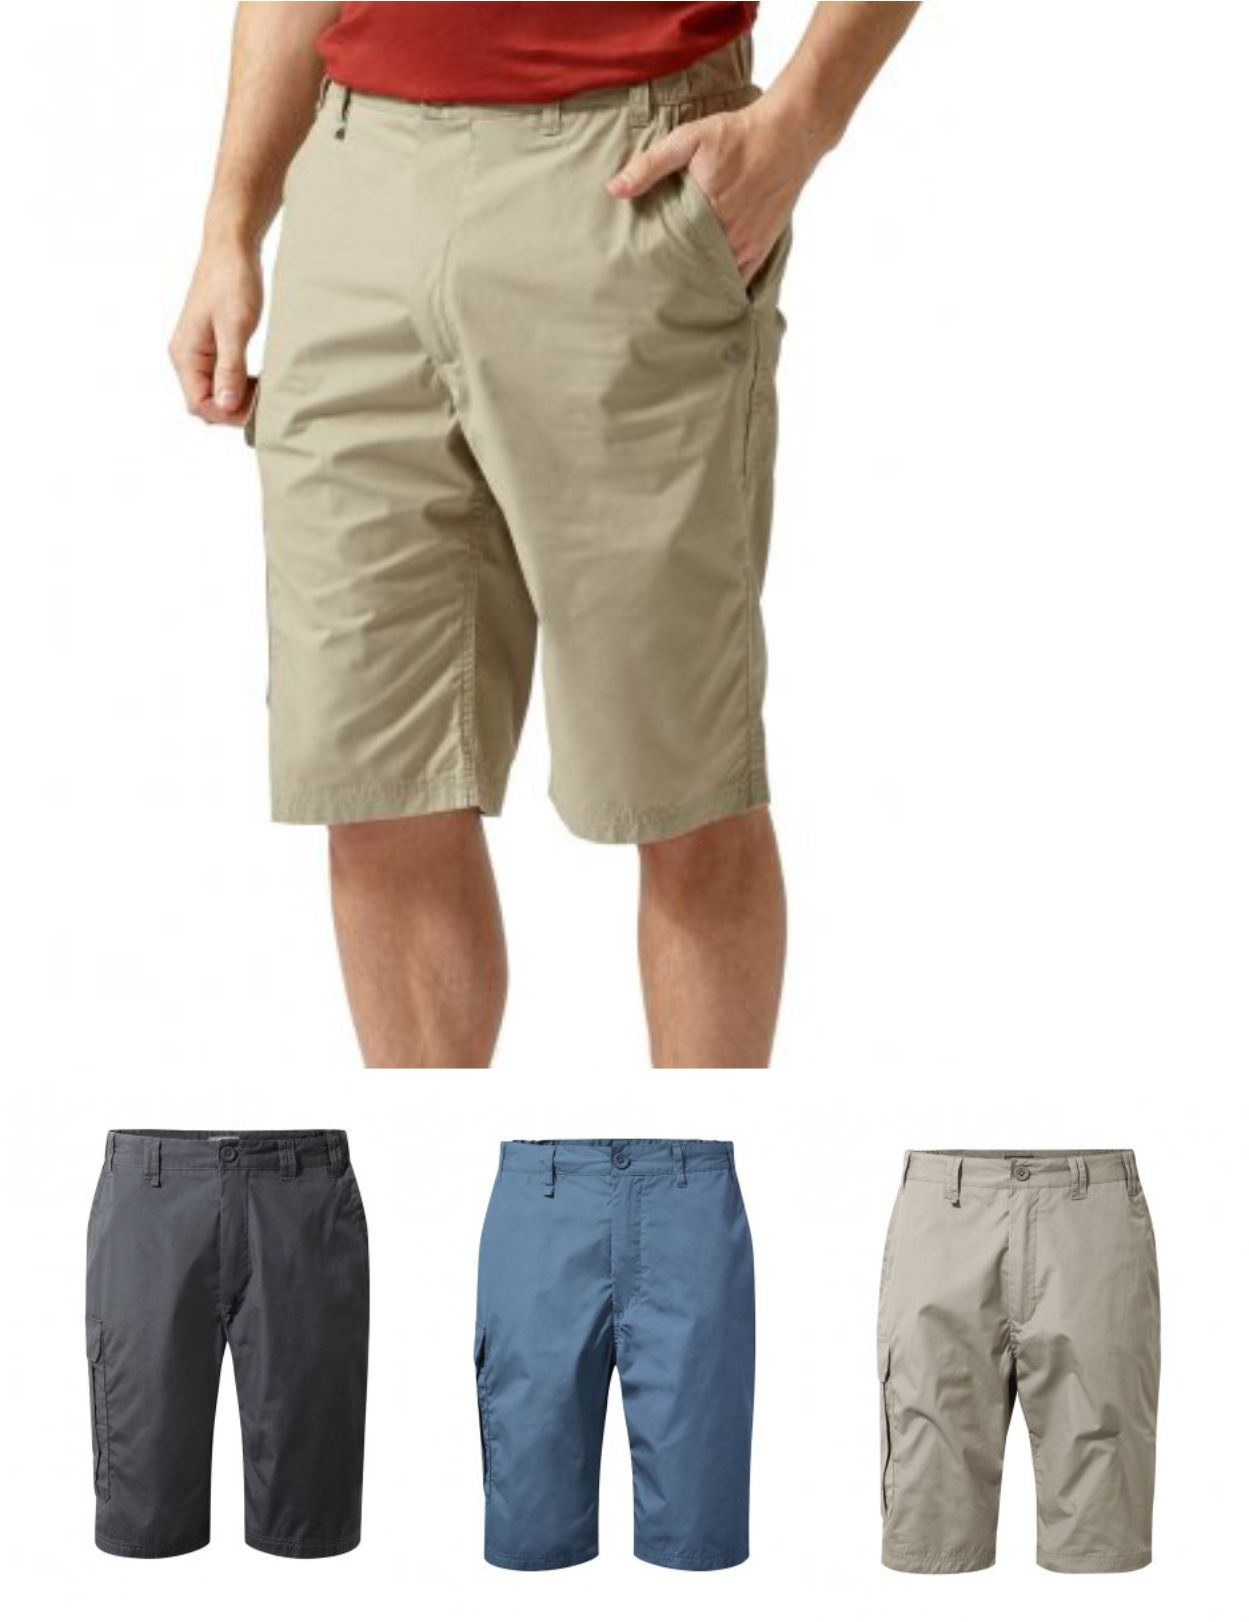 Craghoppers CR222 Ladies Kiwi Stretch III Shorts